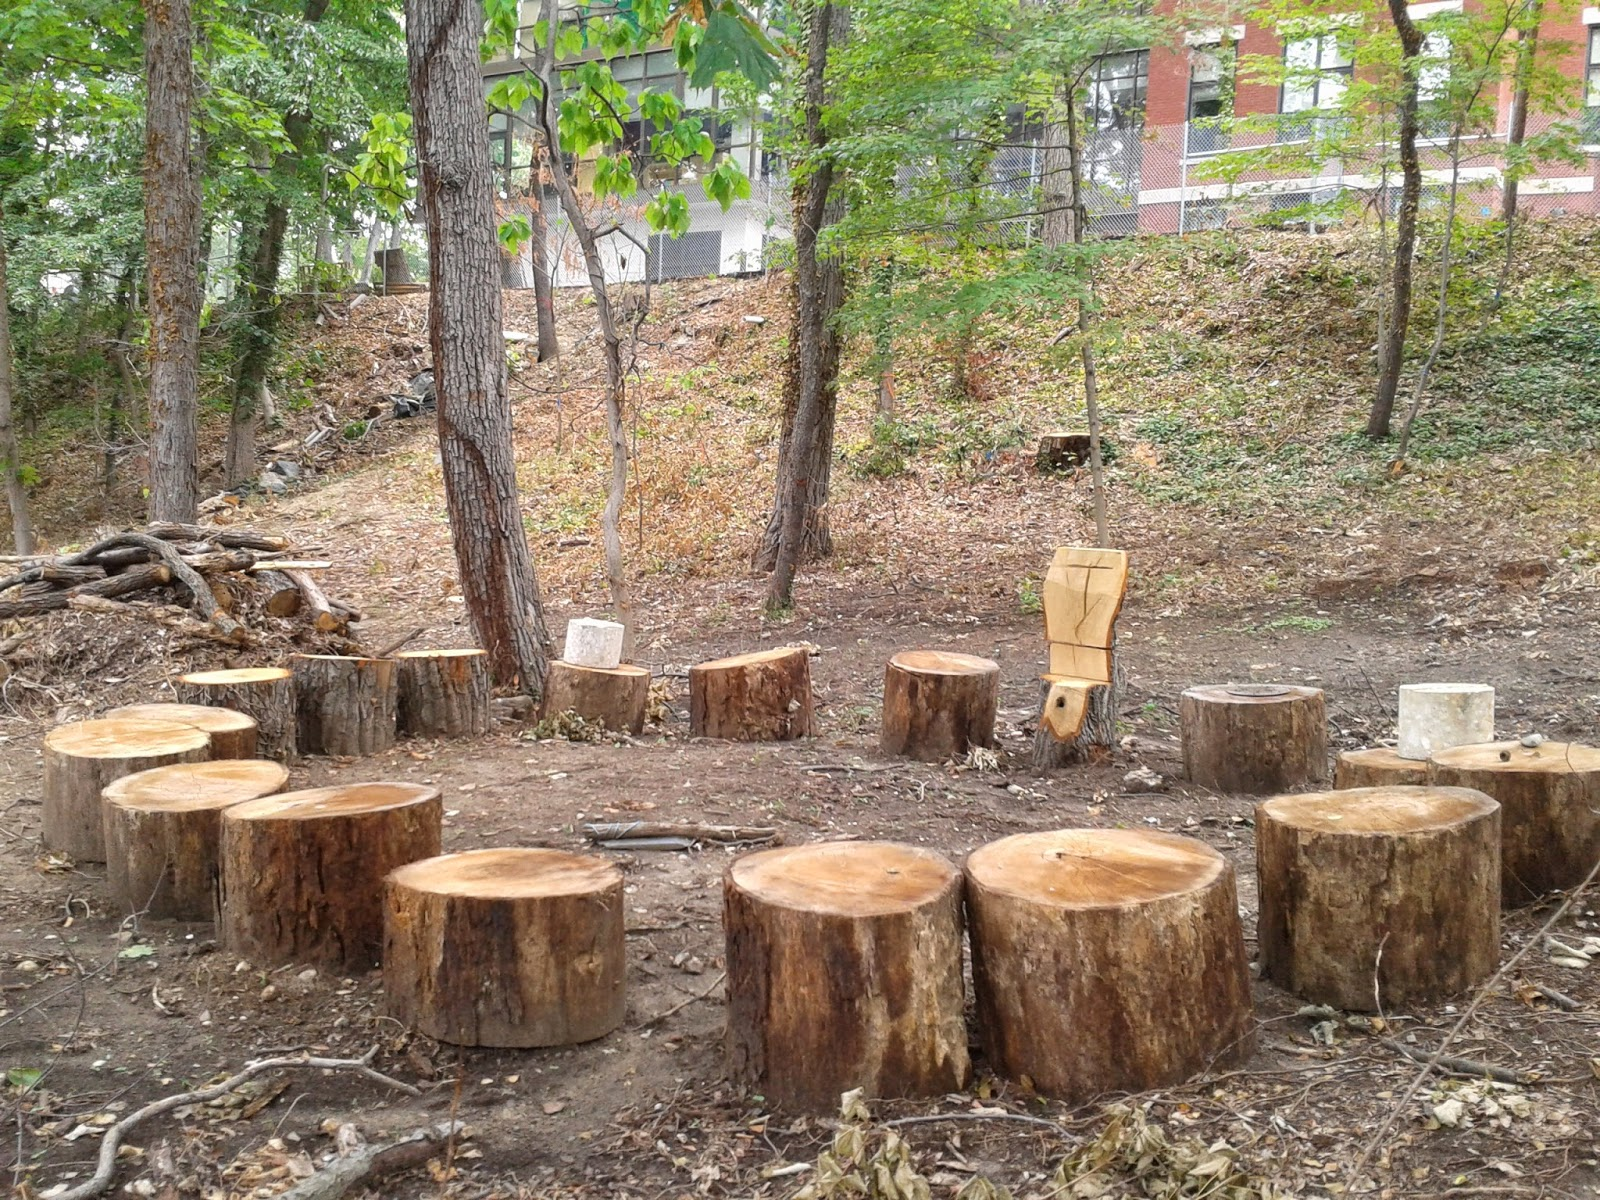 Outdoor Classroom Design Ideas ~ Little scientists with tans outdoor classroom ideas